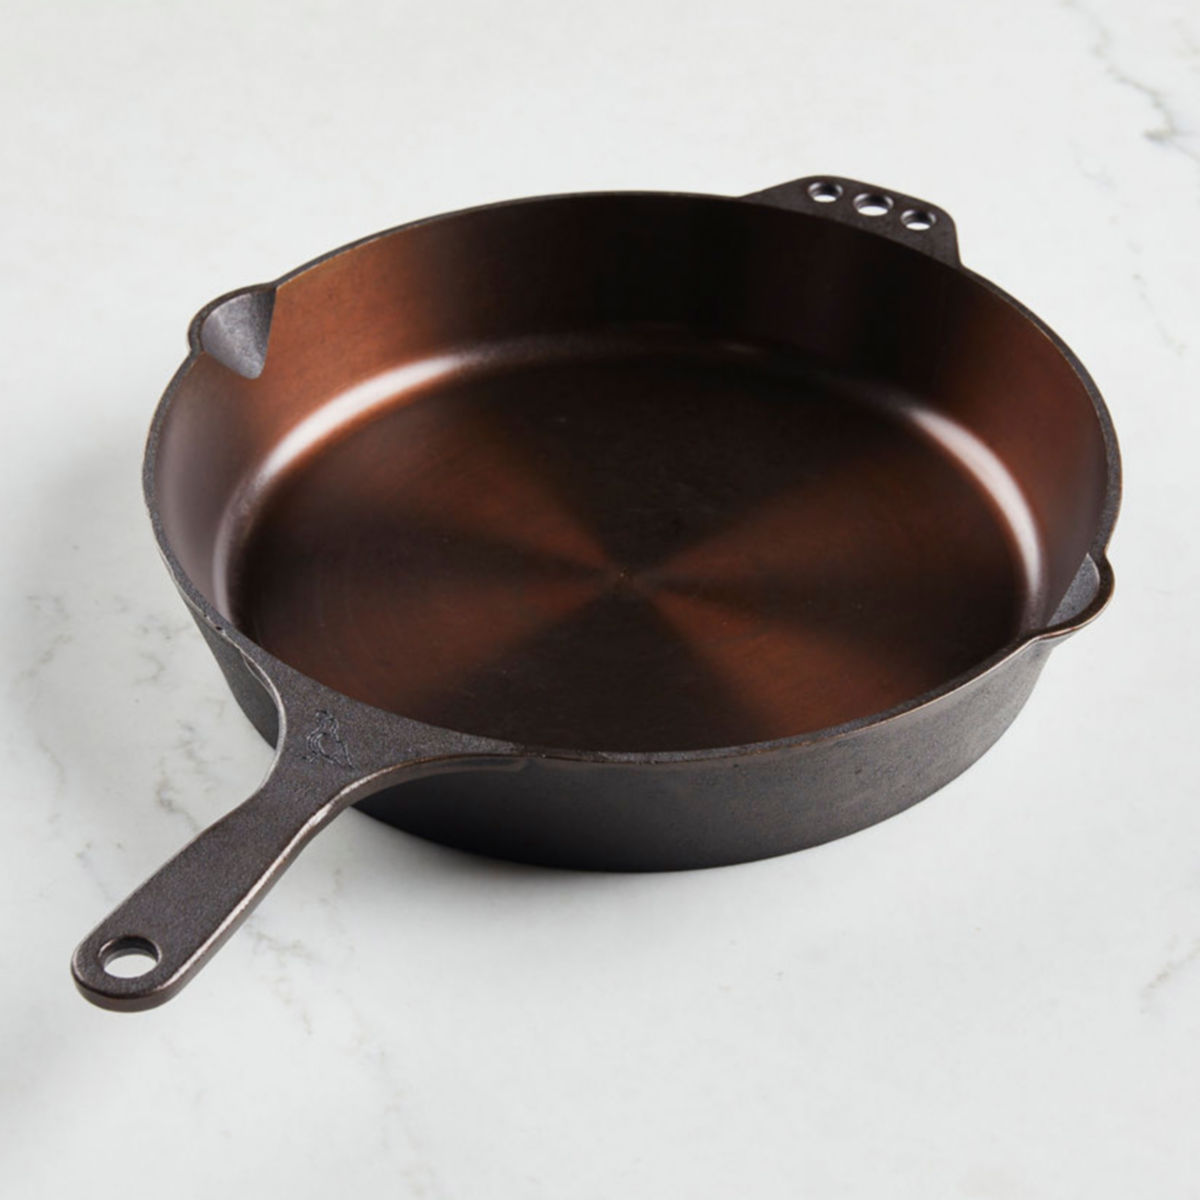 Smithey No. 12 Cast Iron Skillet - image number 0